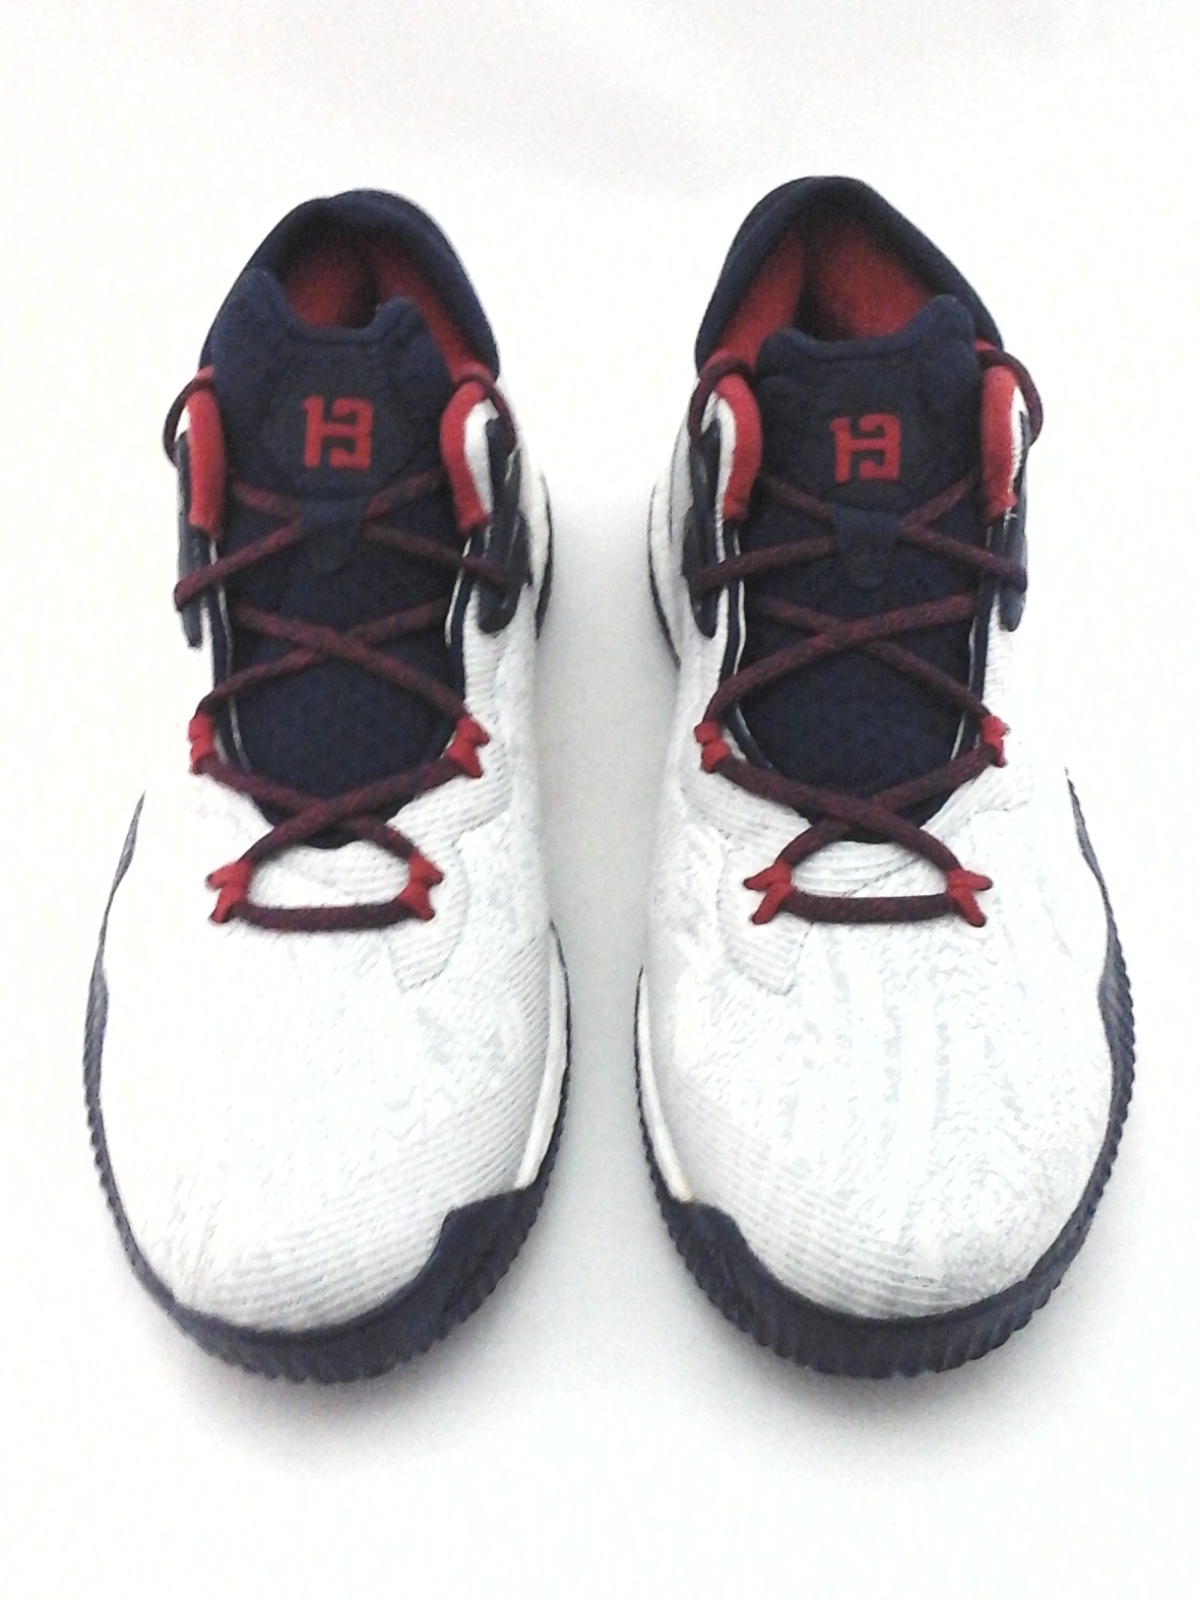 competitive price c94ab edbc5 Adidas HARDEN Crazylight Boost Basketball USA Olympic B49755 Shoes US 12 46  2 3